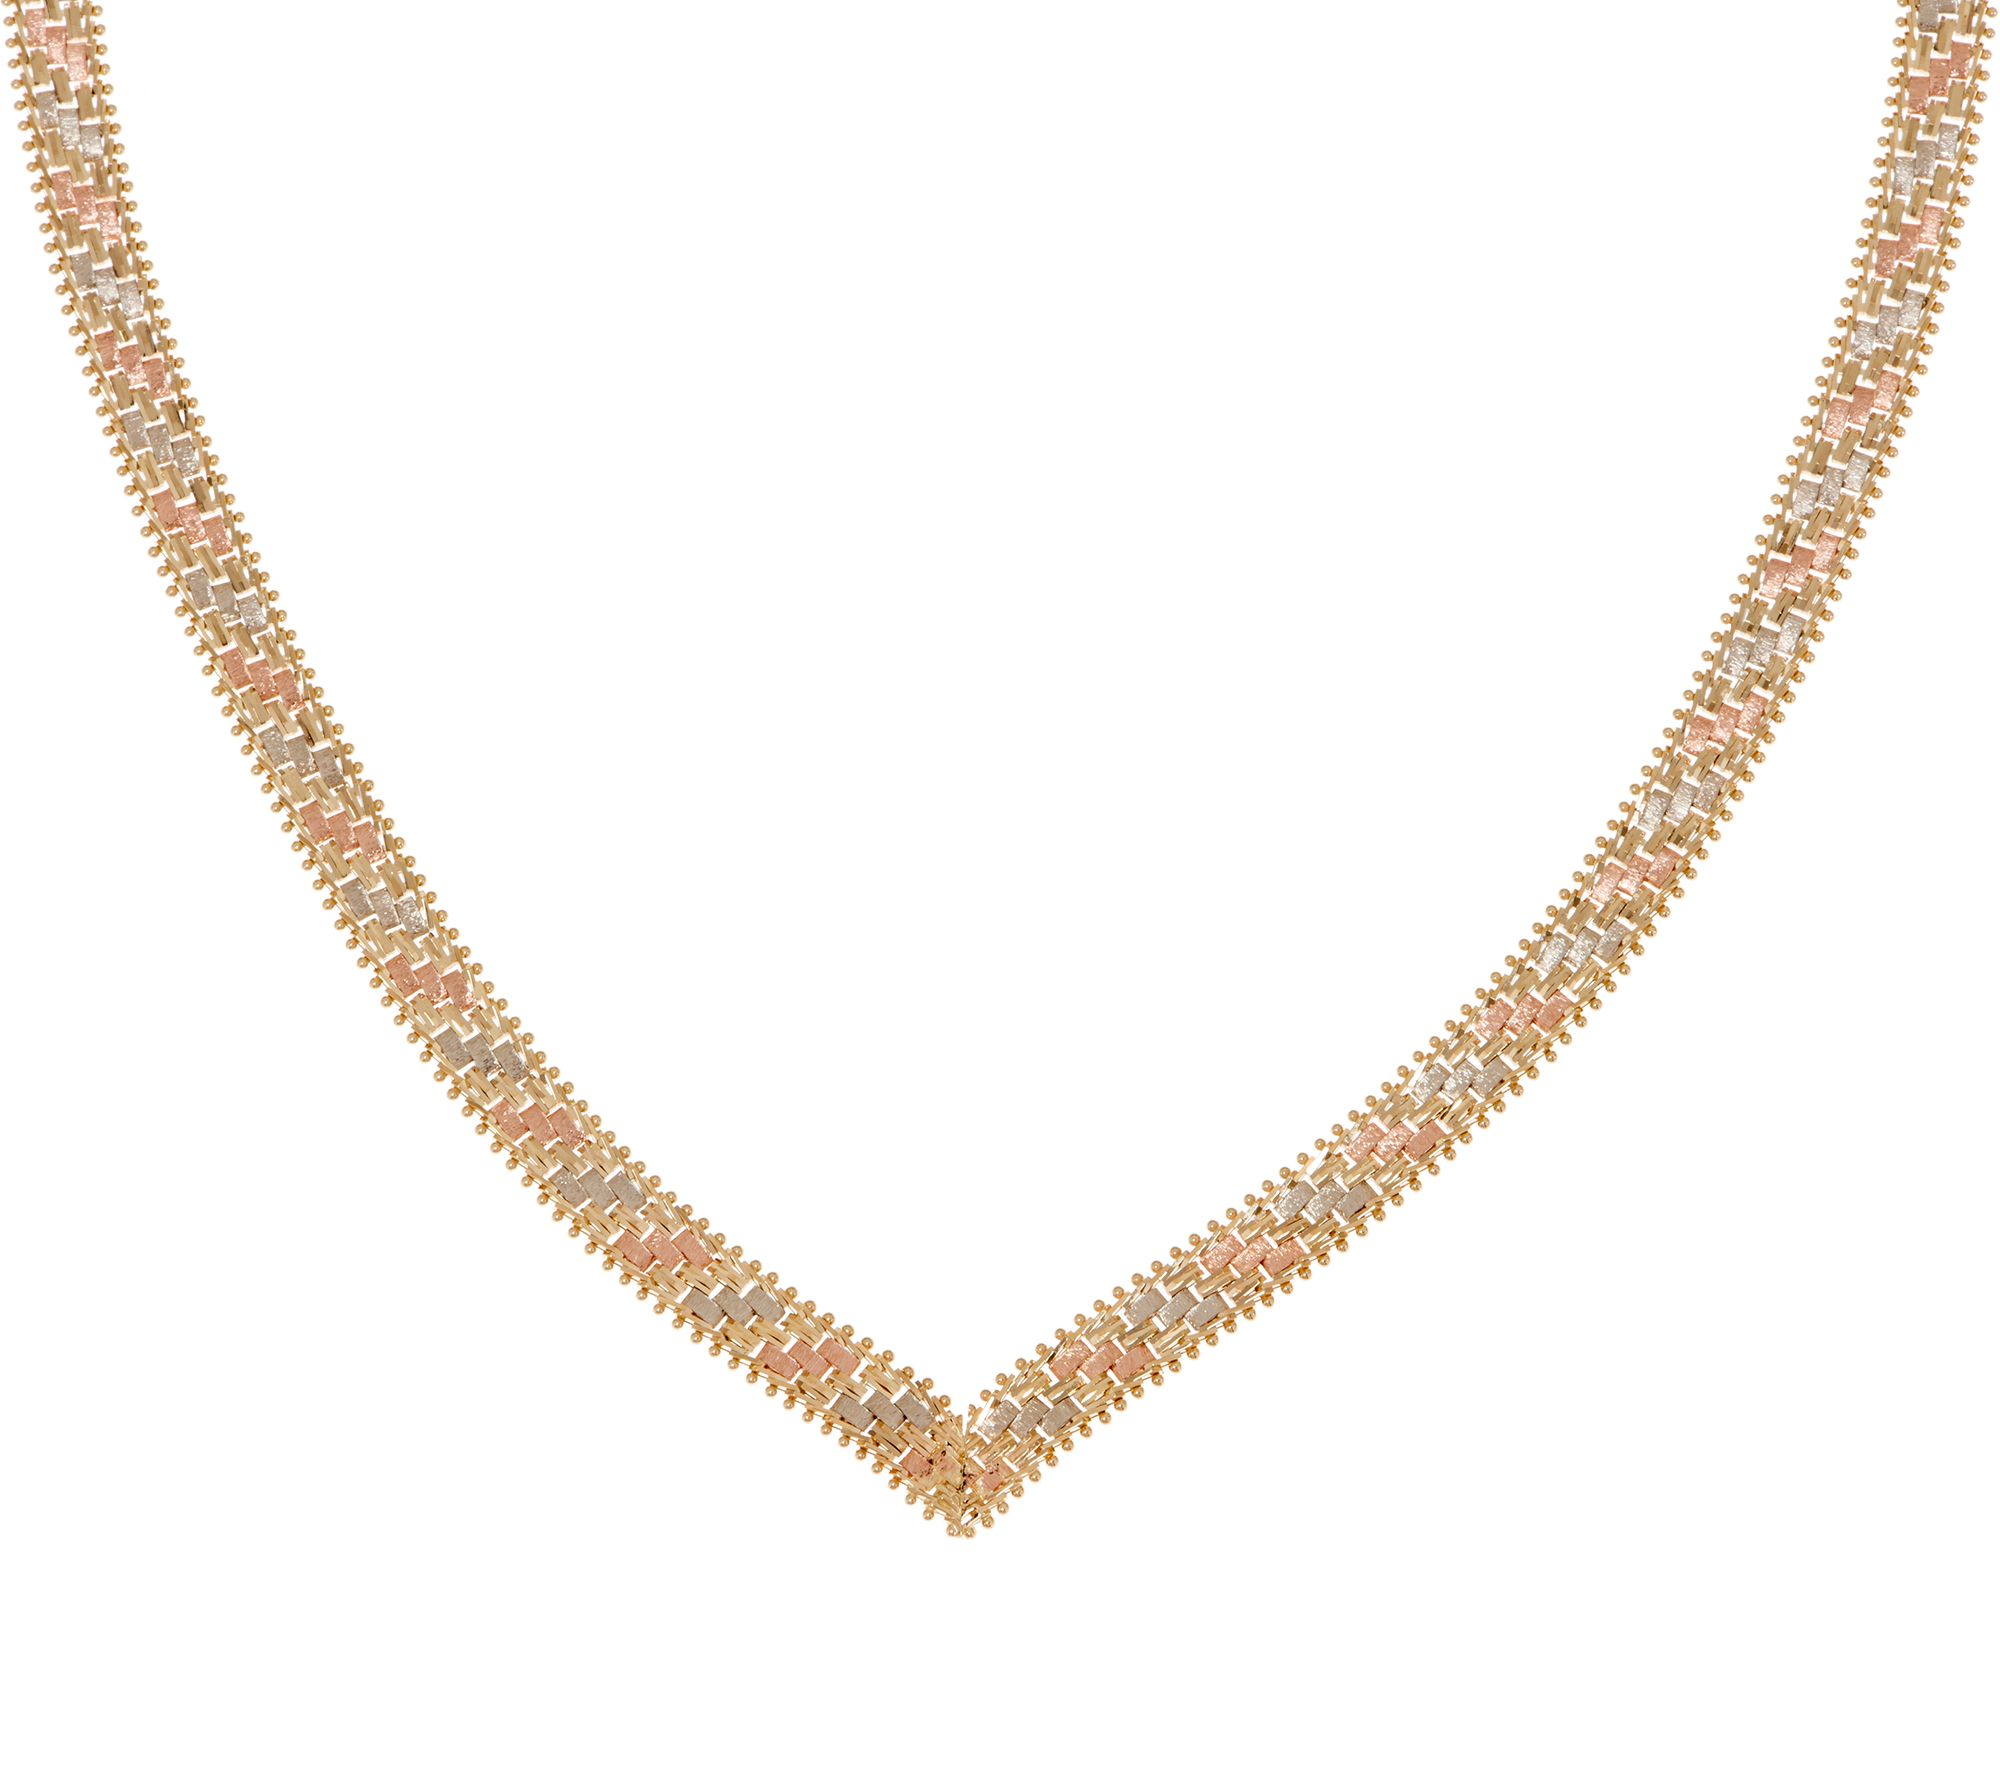 Imperial Gold Fine Gold Jewelry QVCcom